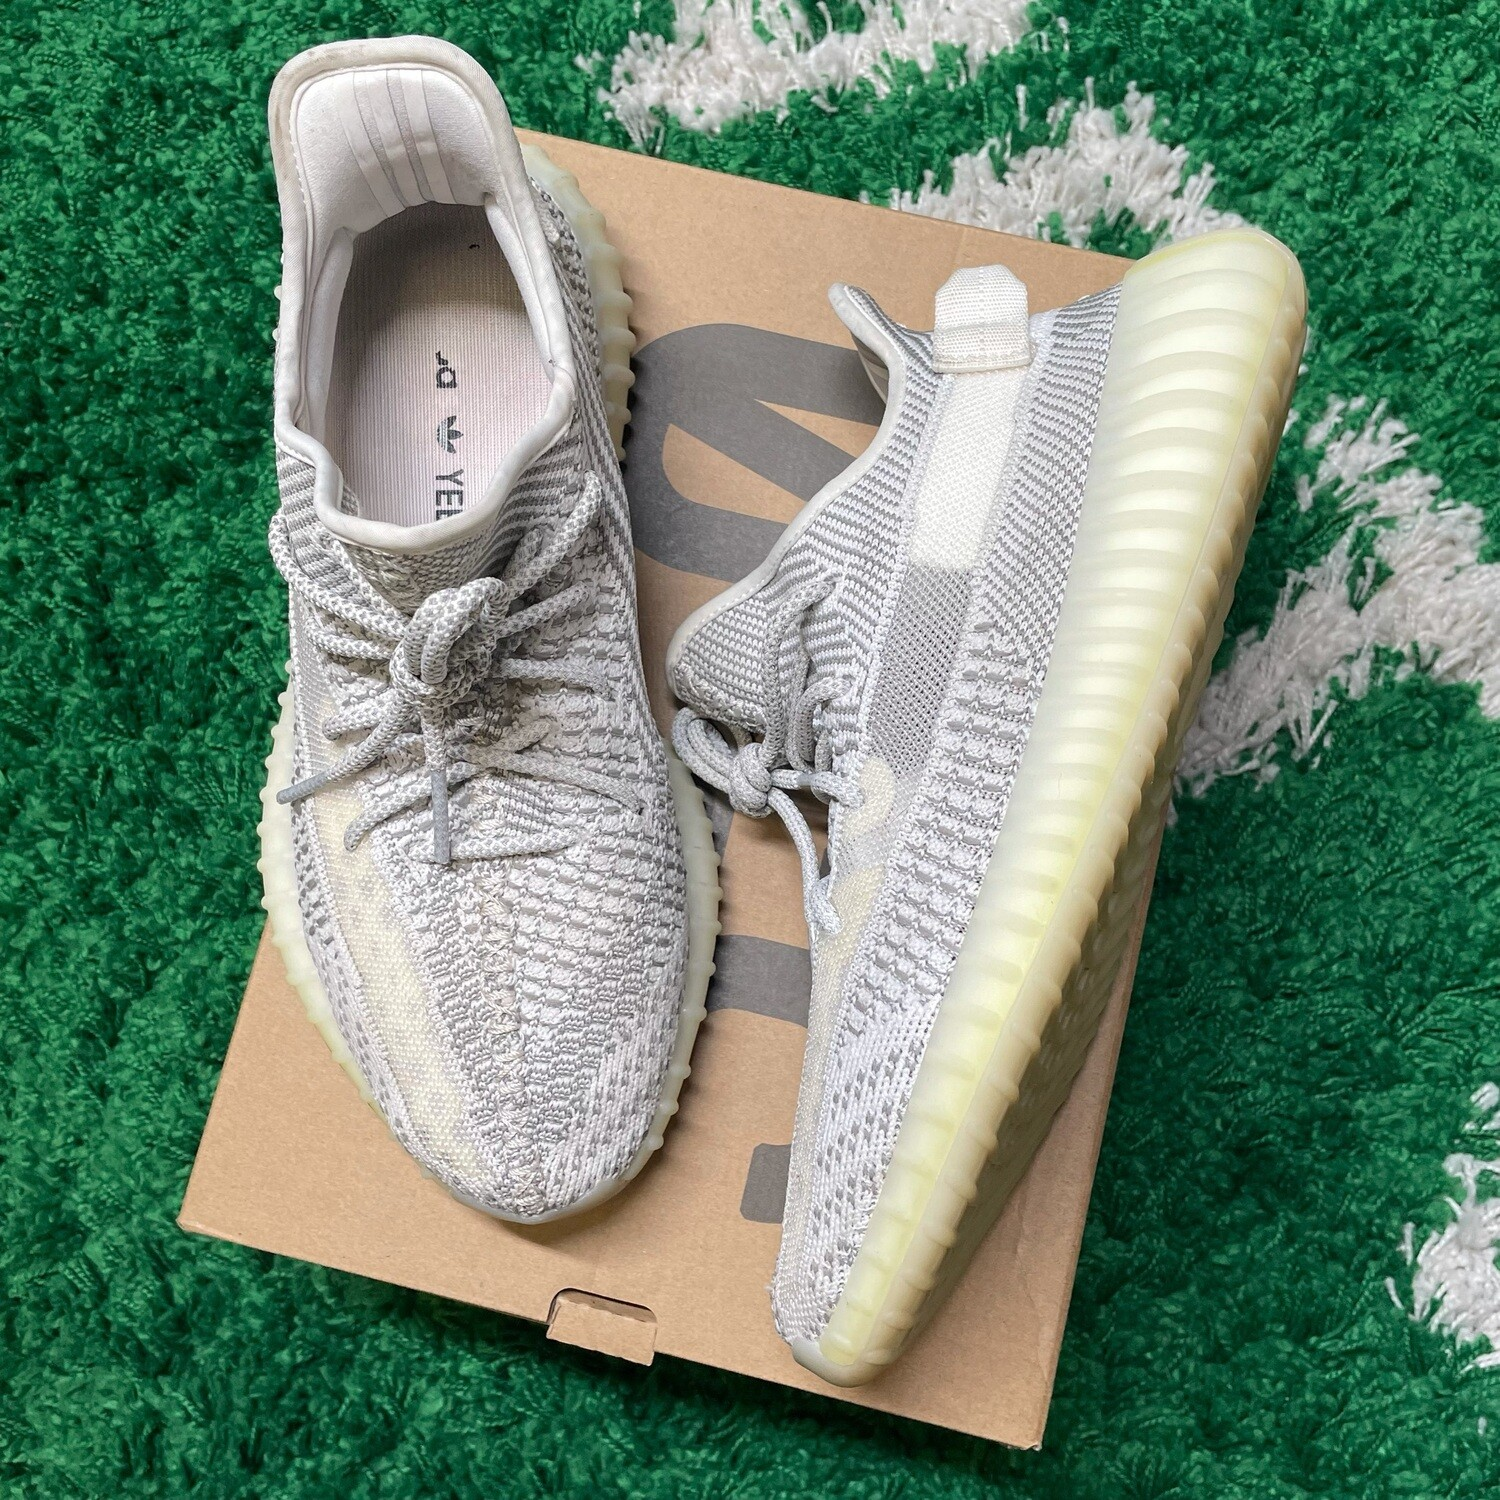 Adidas Yeezy Boost 350 V2 Static (Non-Reflective) Size 9.5